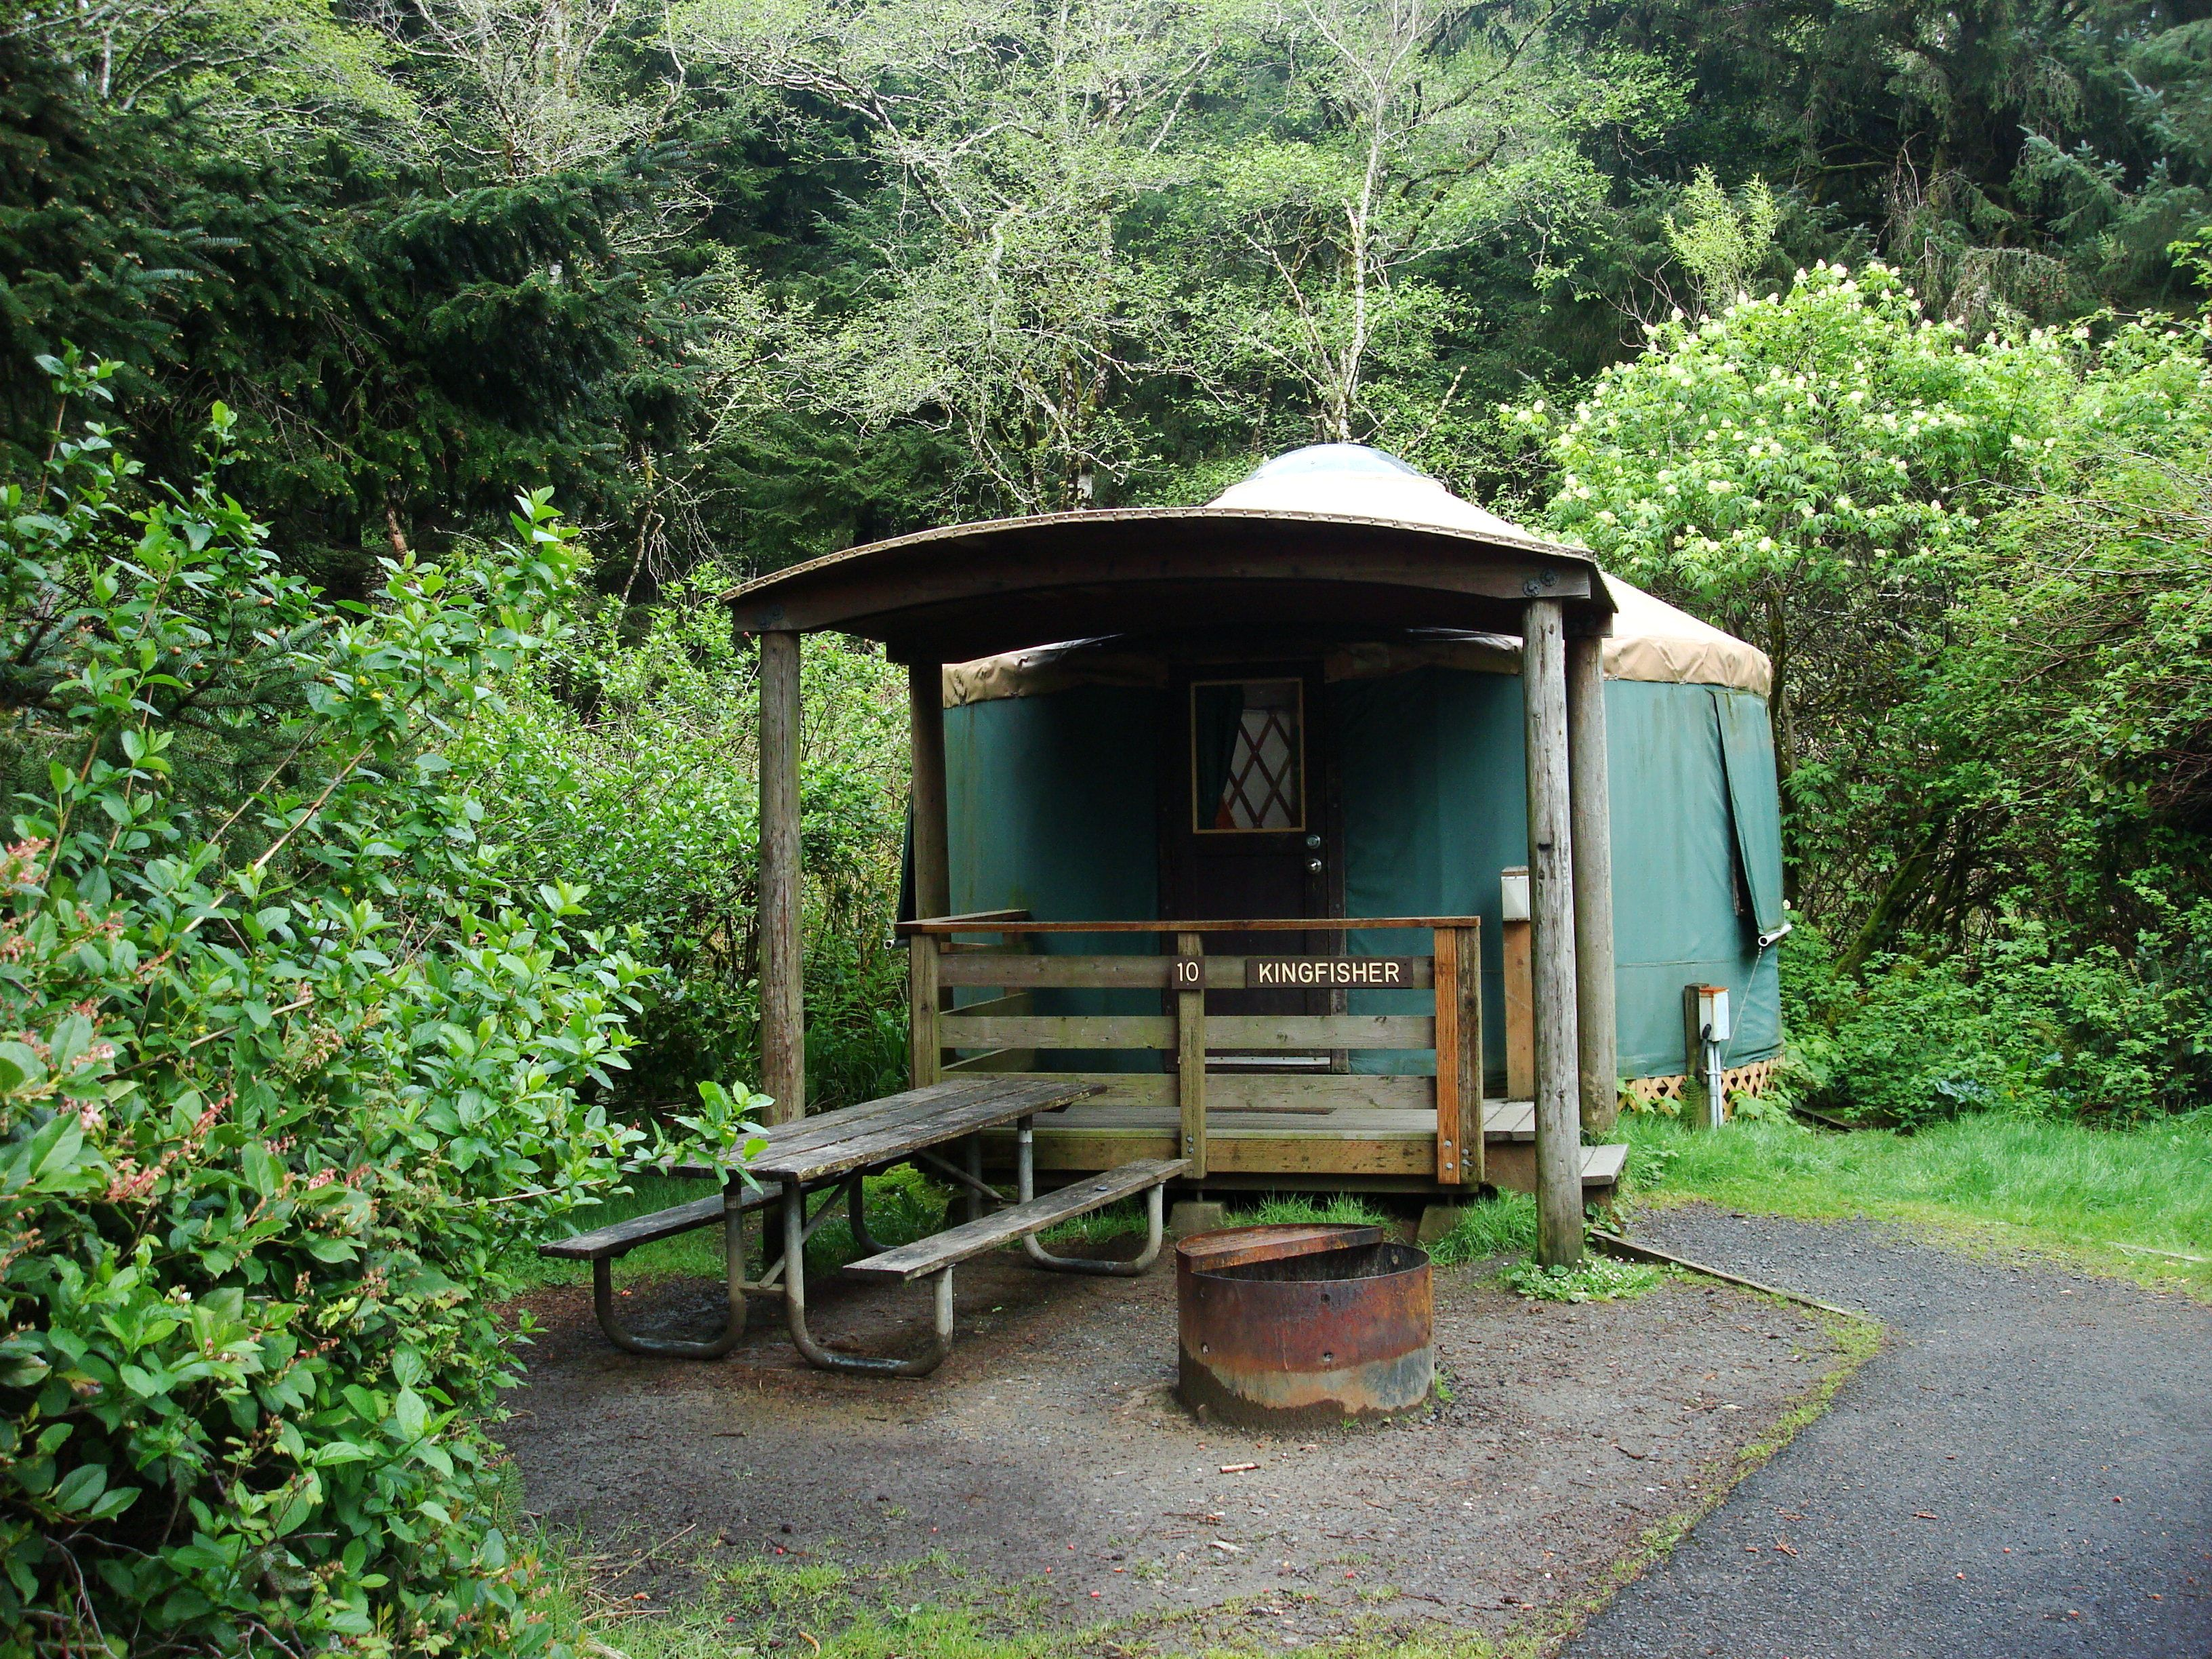 Our lil yurt at beverly beach state park in oregon for Oregon state parks yurts and cabins